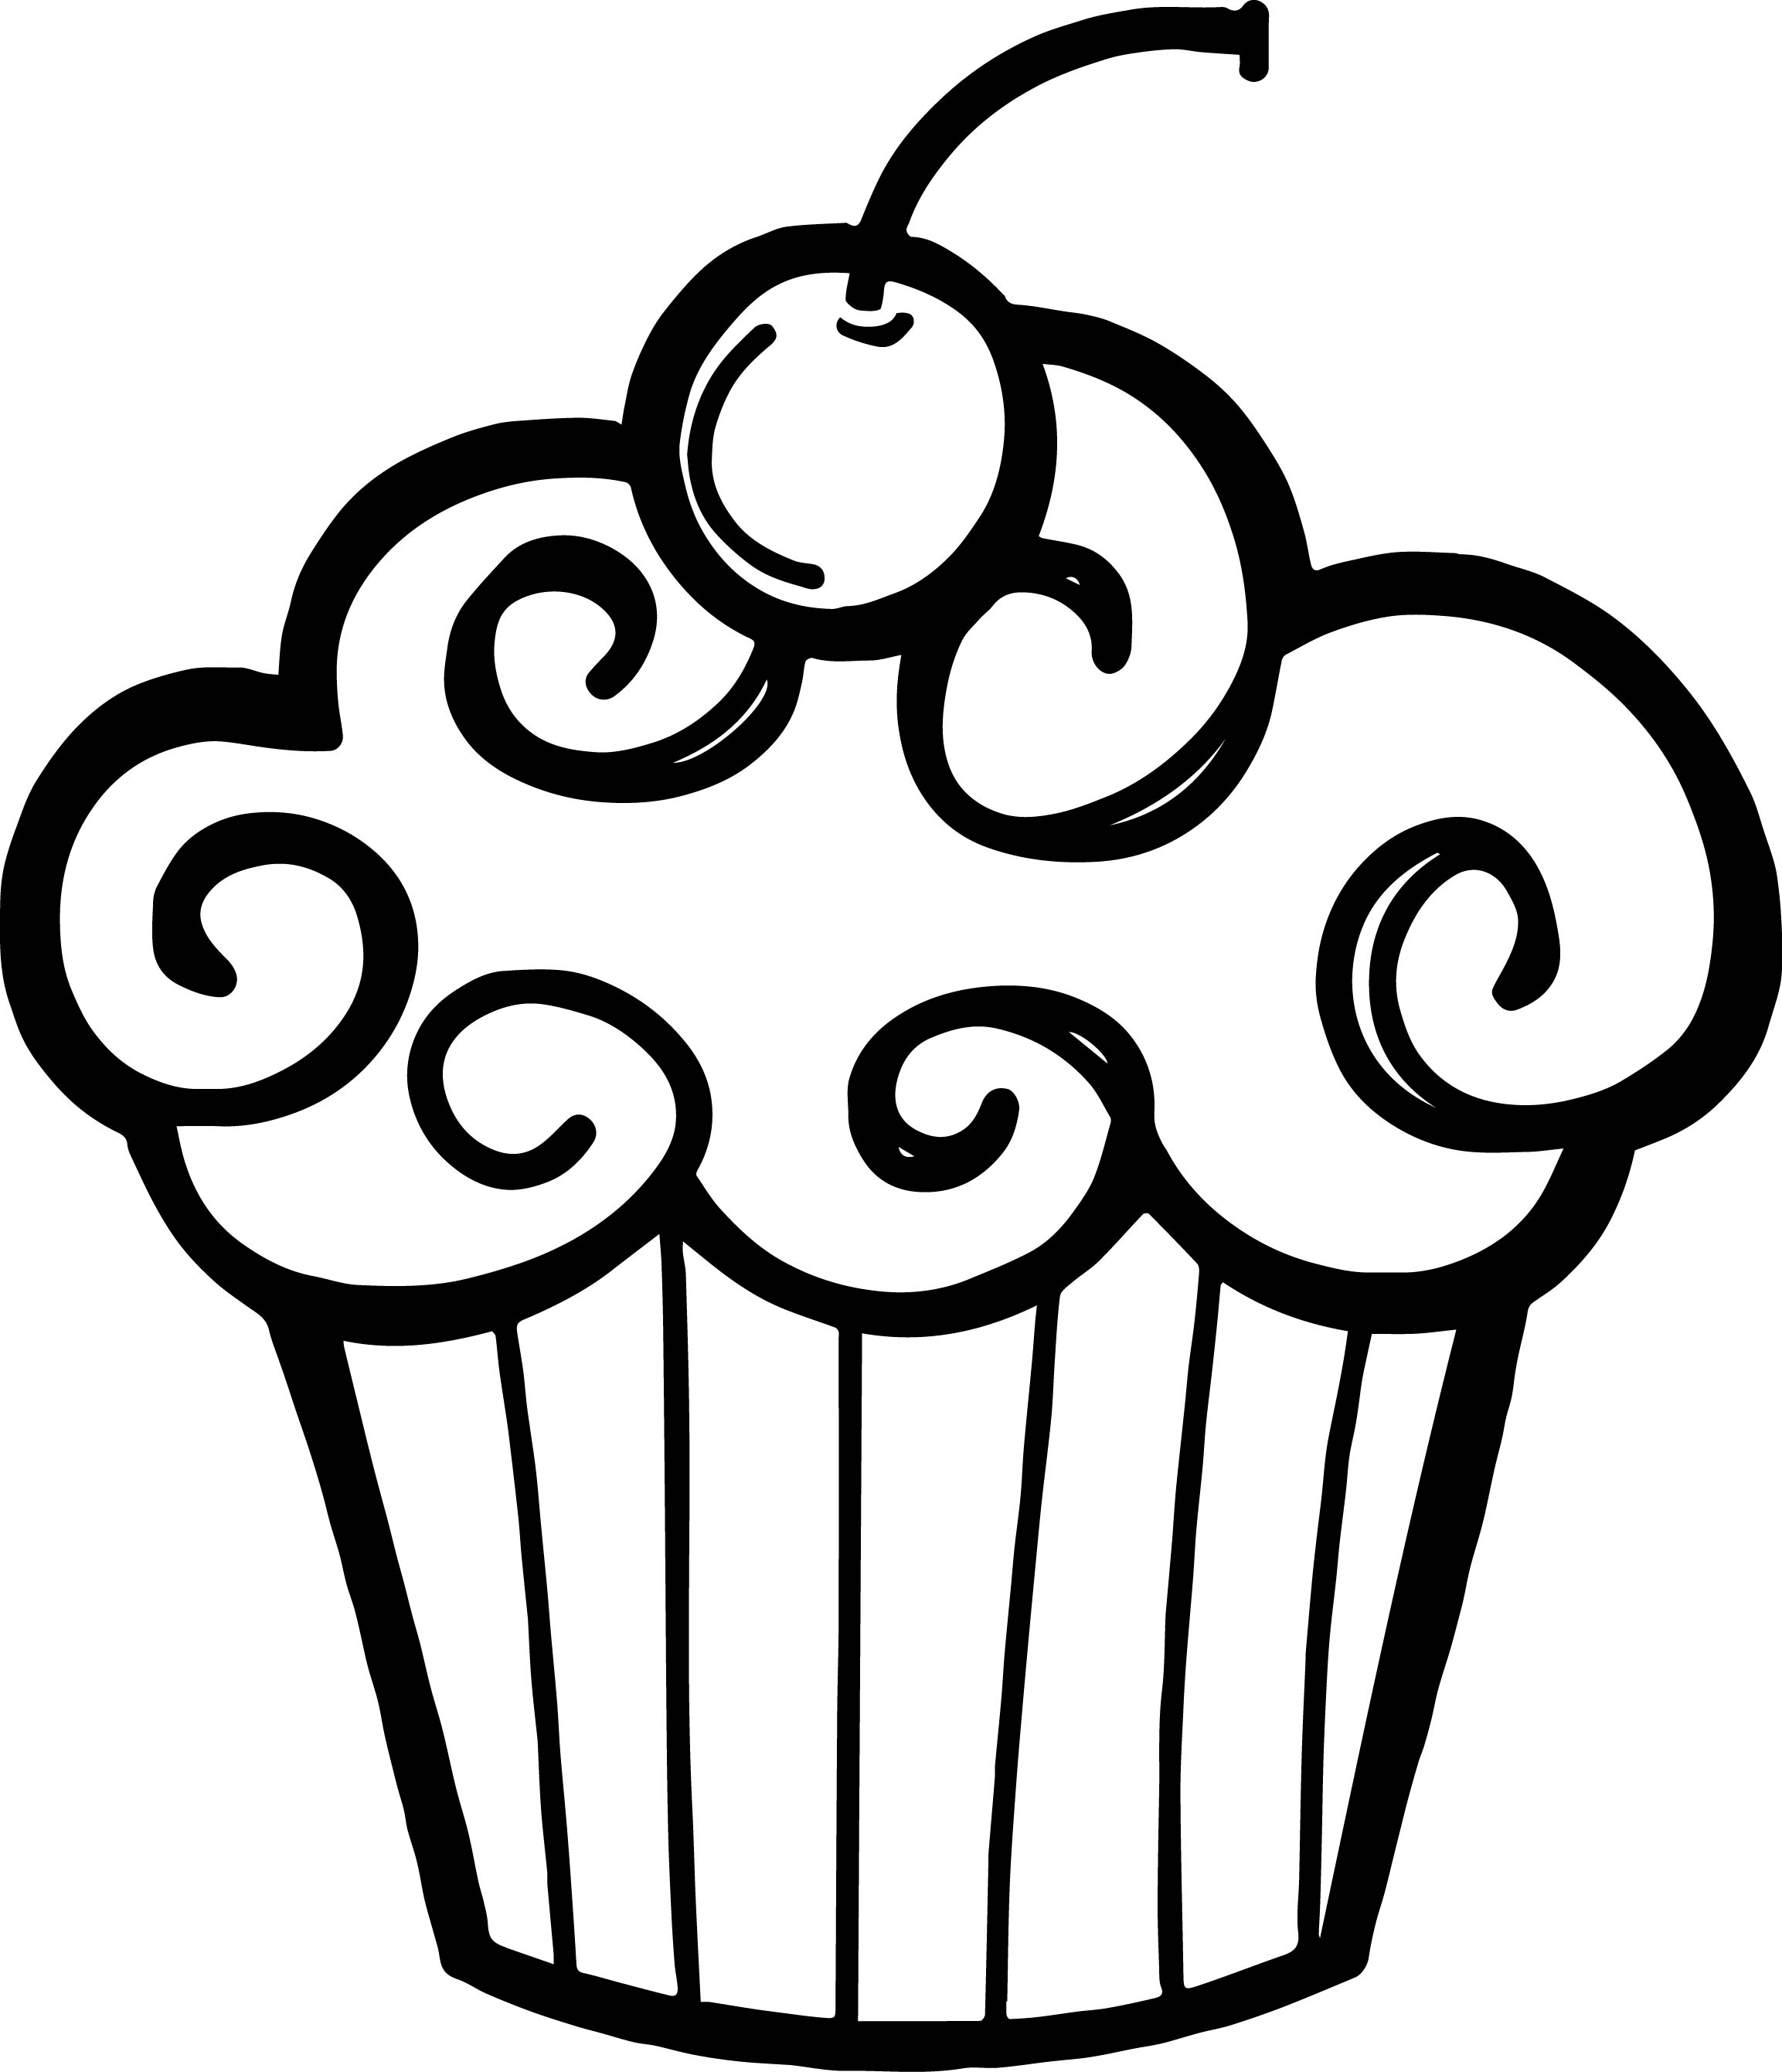 Simple Cupcake Drawing